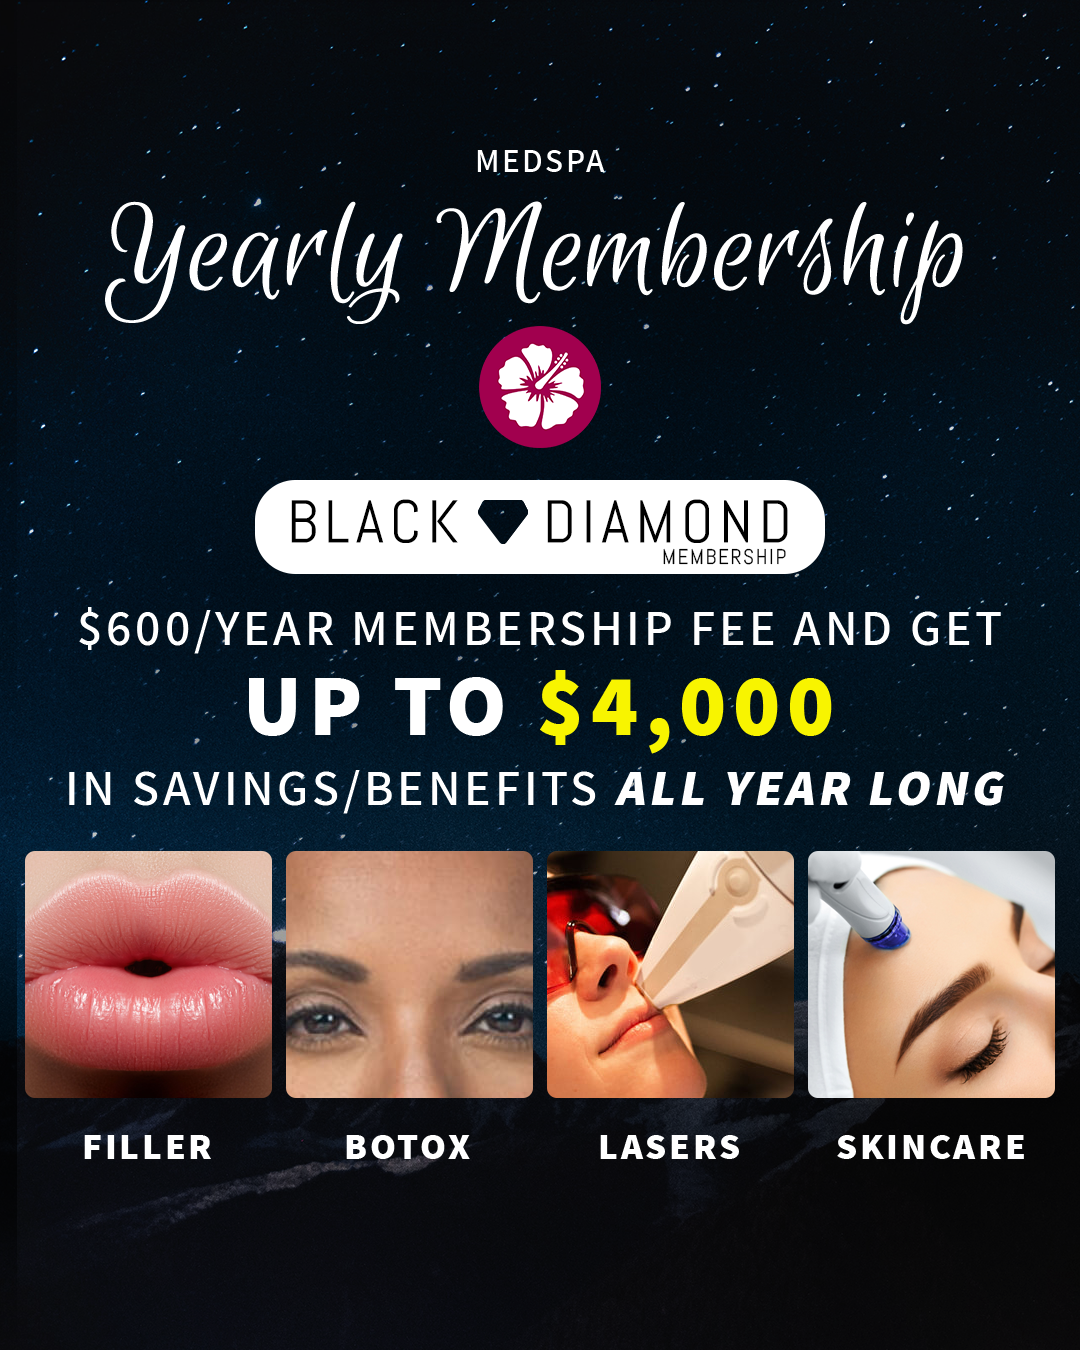 Yearly Memberships